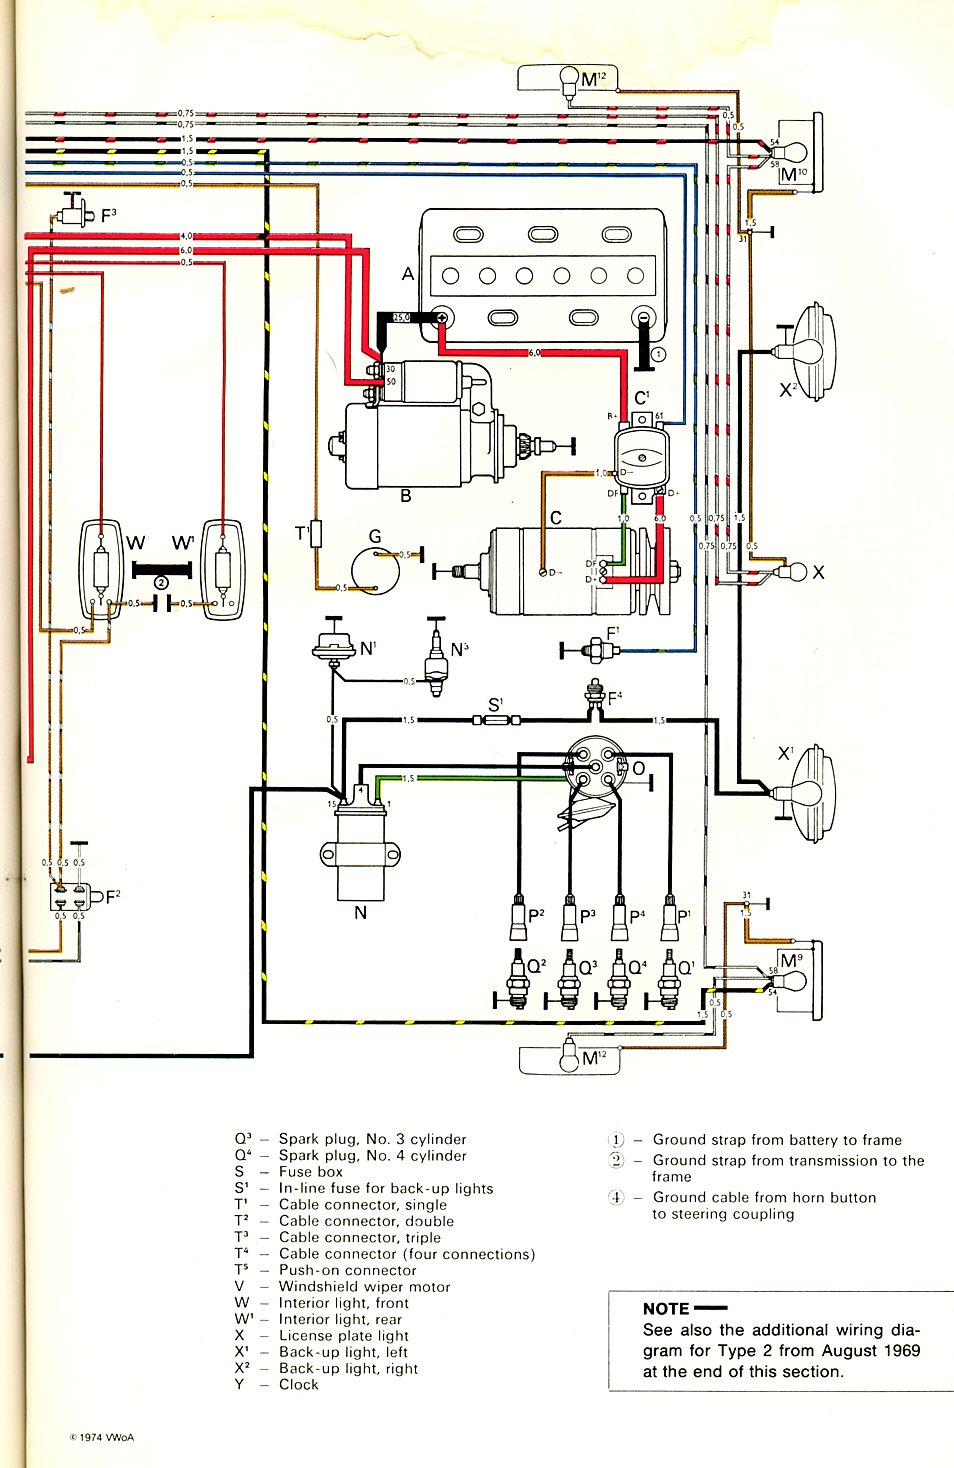 baybus_70b thesamba com type 2 wiring diagrams vw alternator wiring harness at n-0.co